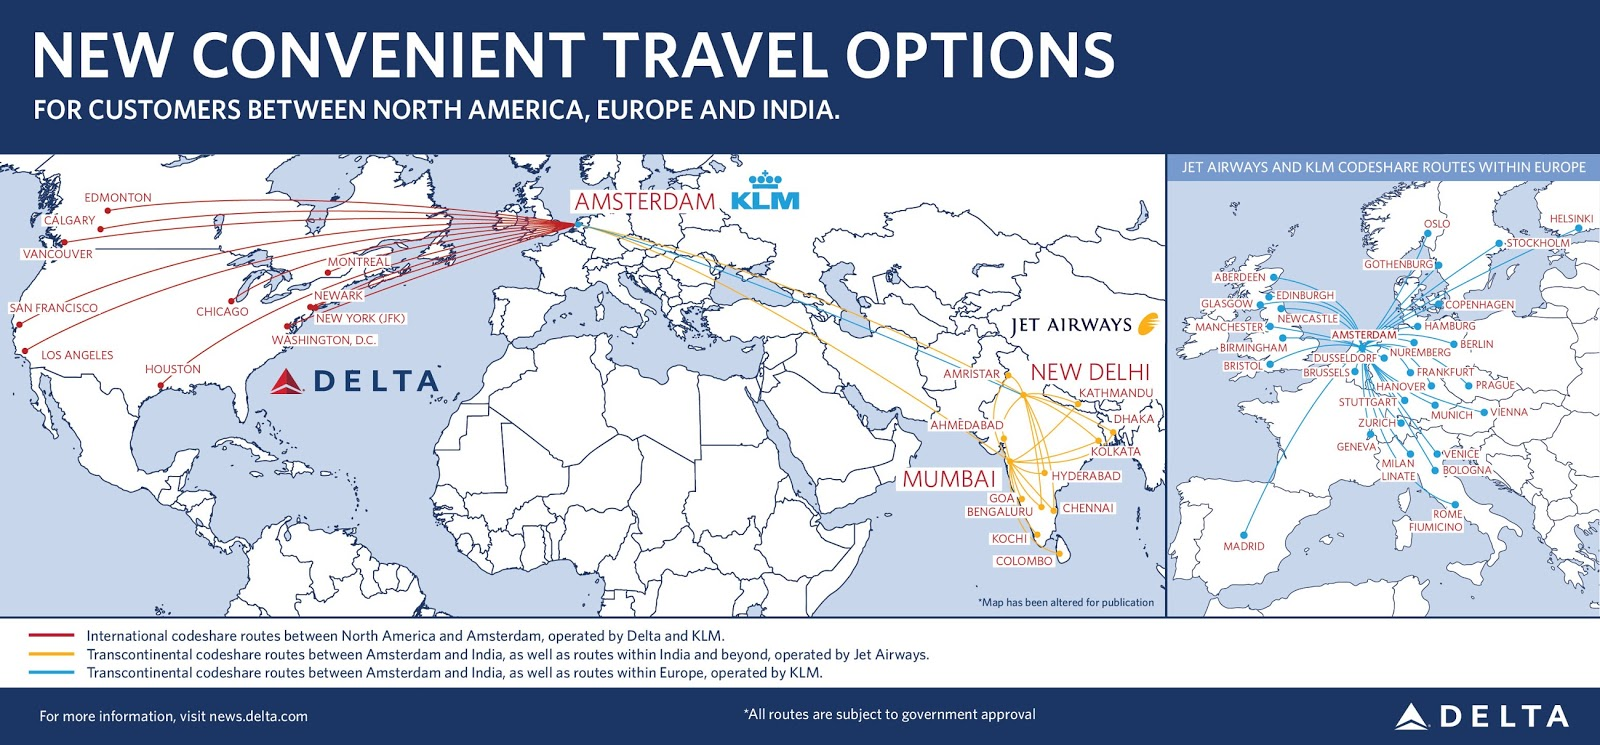 so now with expanded co operation between delta and jet airways skymiles members traveling through amsterdam london and paris will be able to connect to